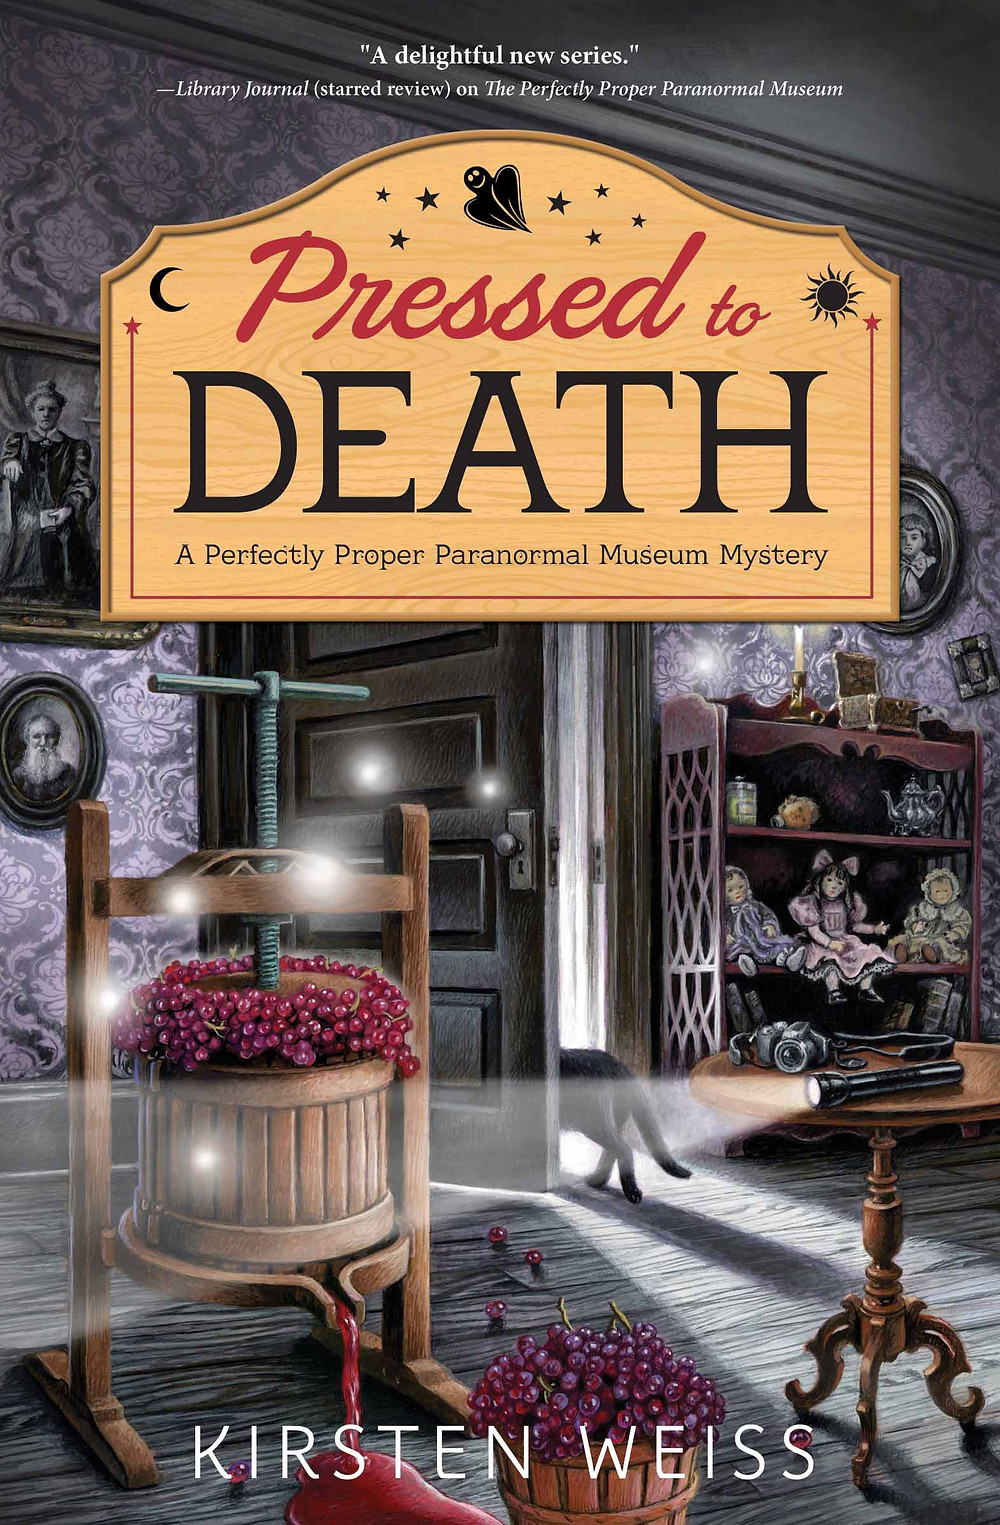 Paranormal Museum cozy mysteries by Kirsten Weiss